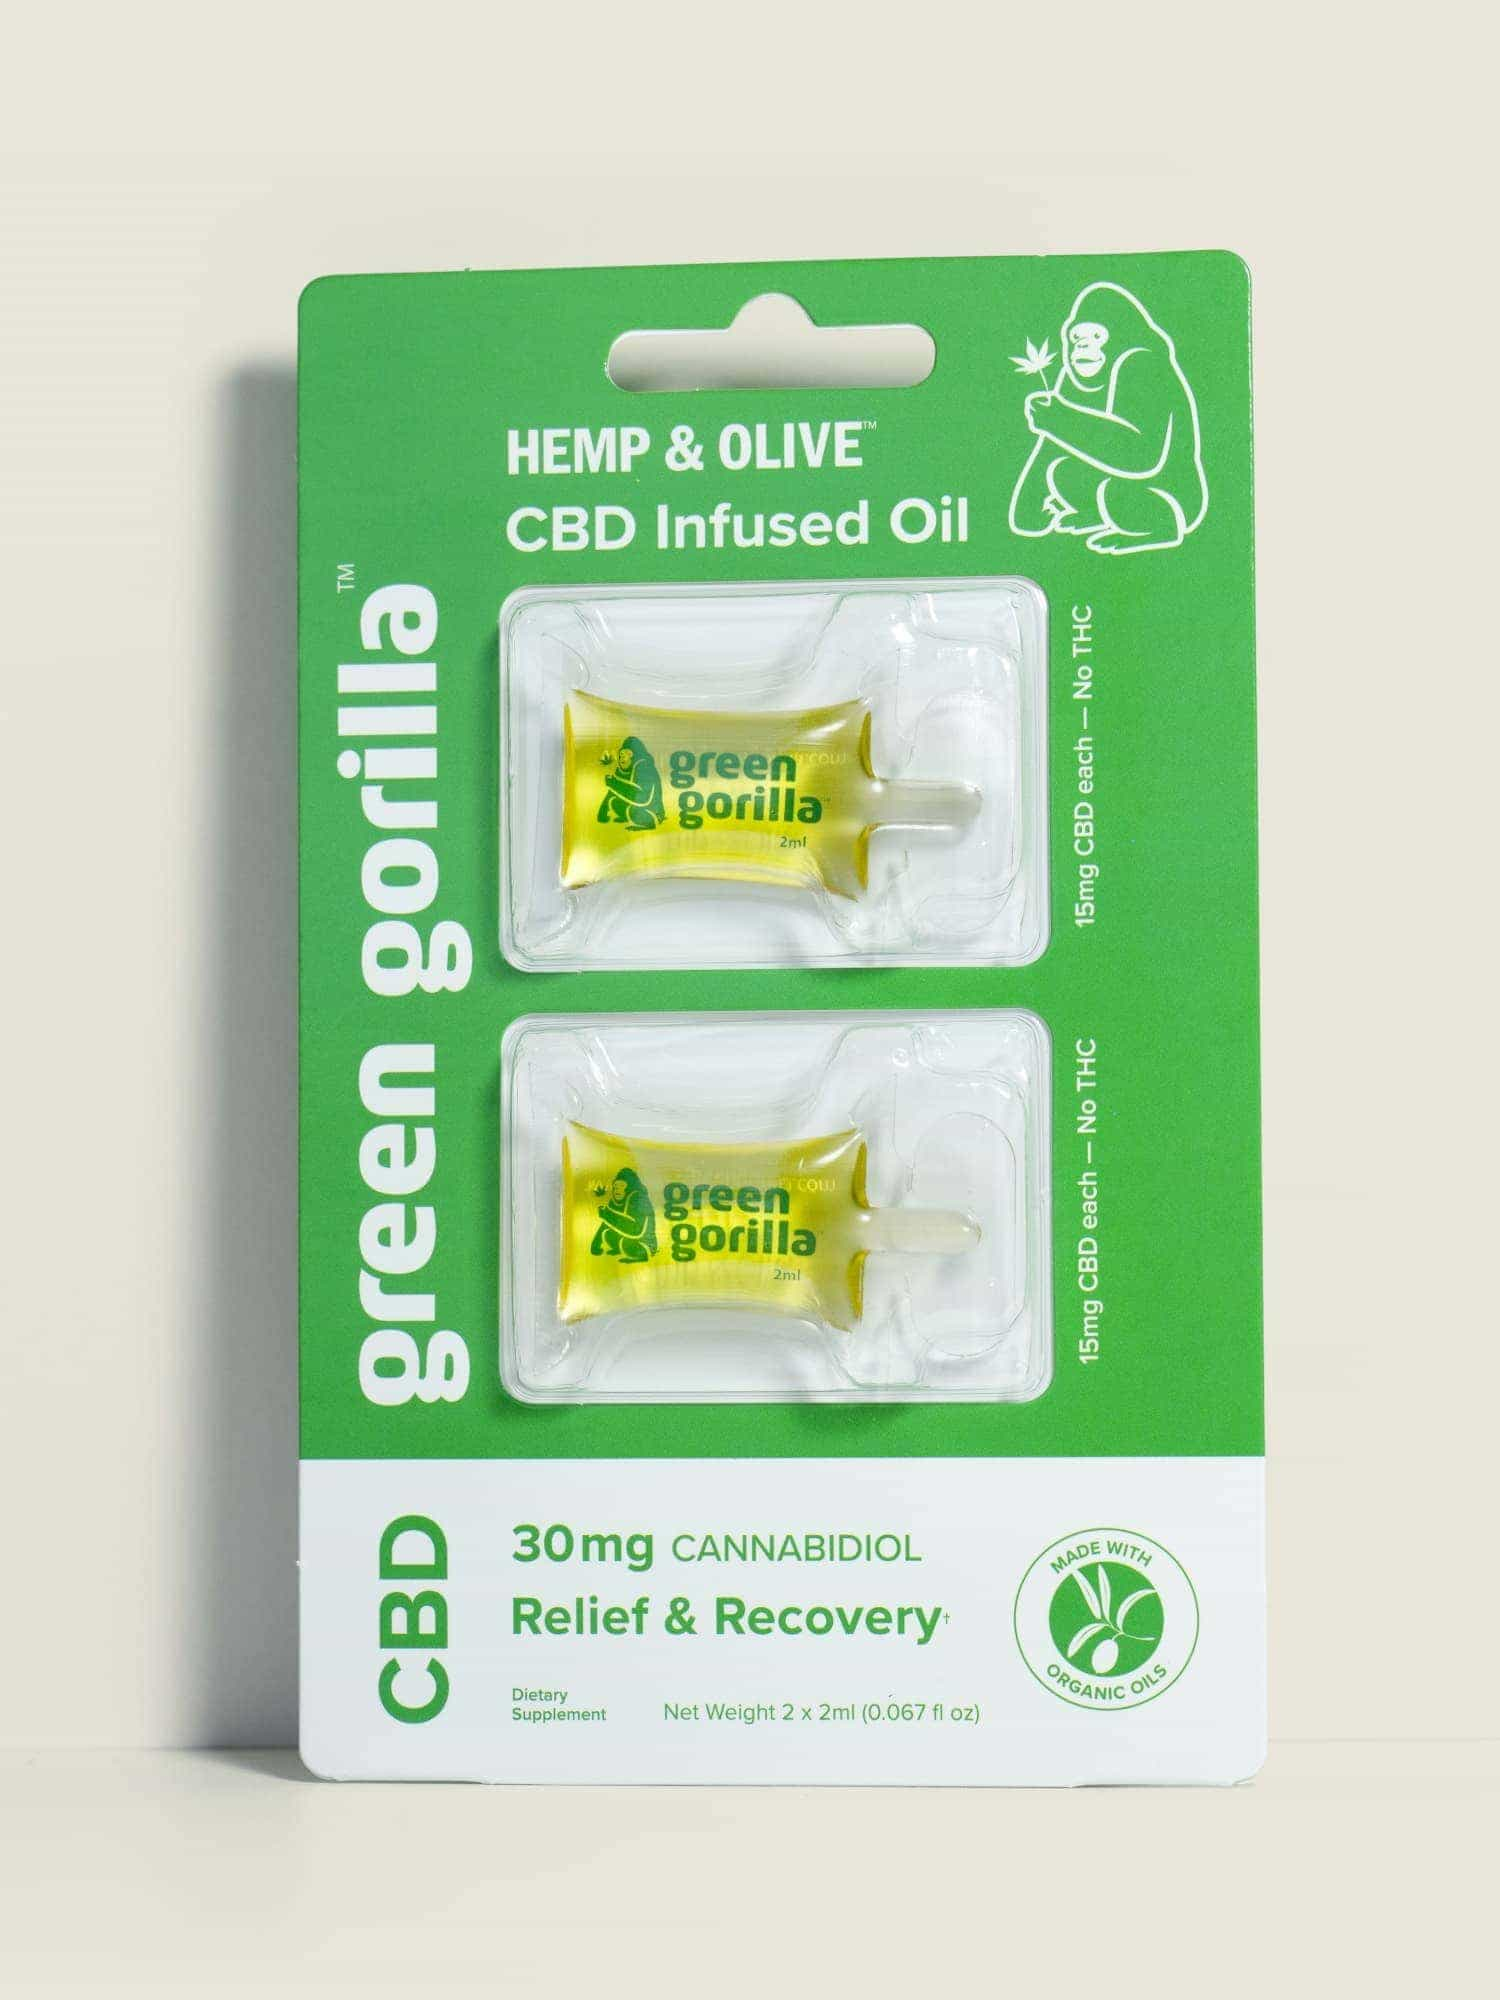 USDA Certified Organic Pure CBD oil single serve blisterpacks - 30mg | Green Gorilla